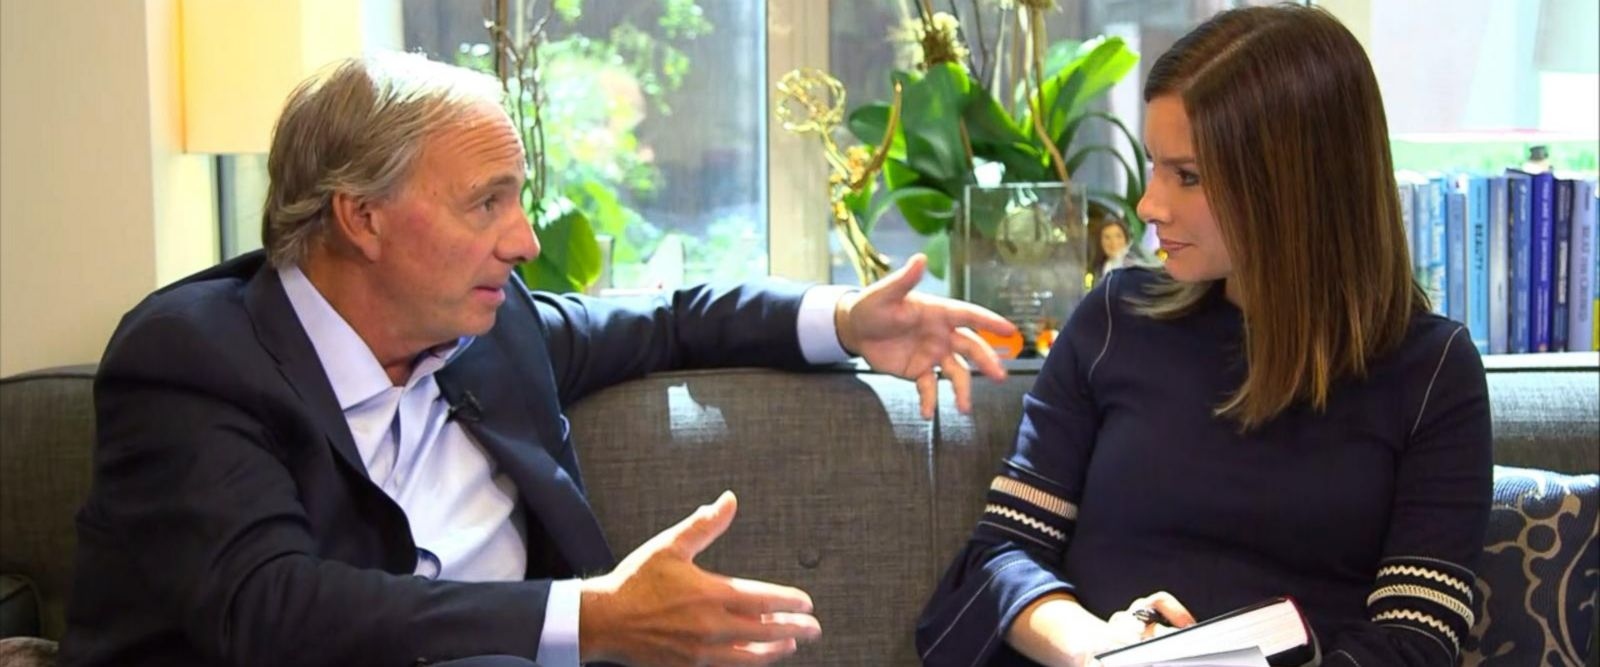 VIDEO: Bridgewater hedge fund manager Ray Dalio talks investing, leadership